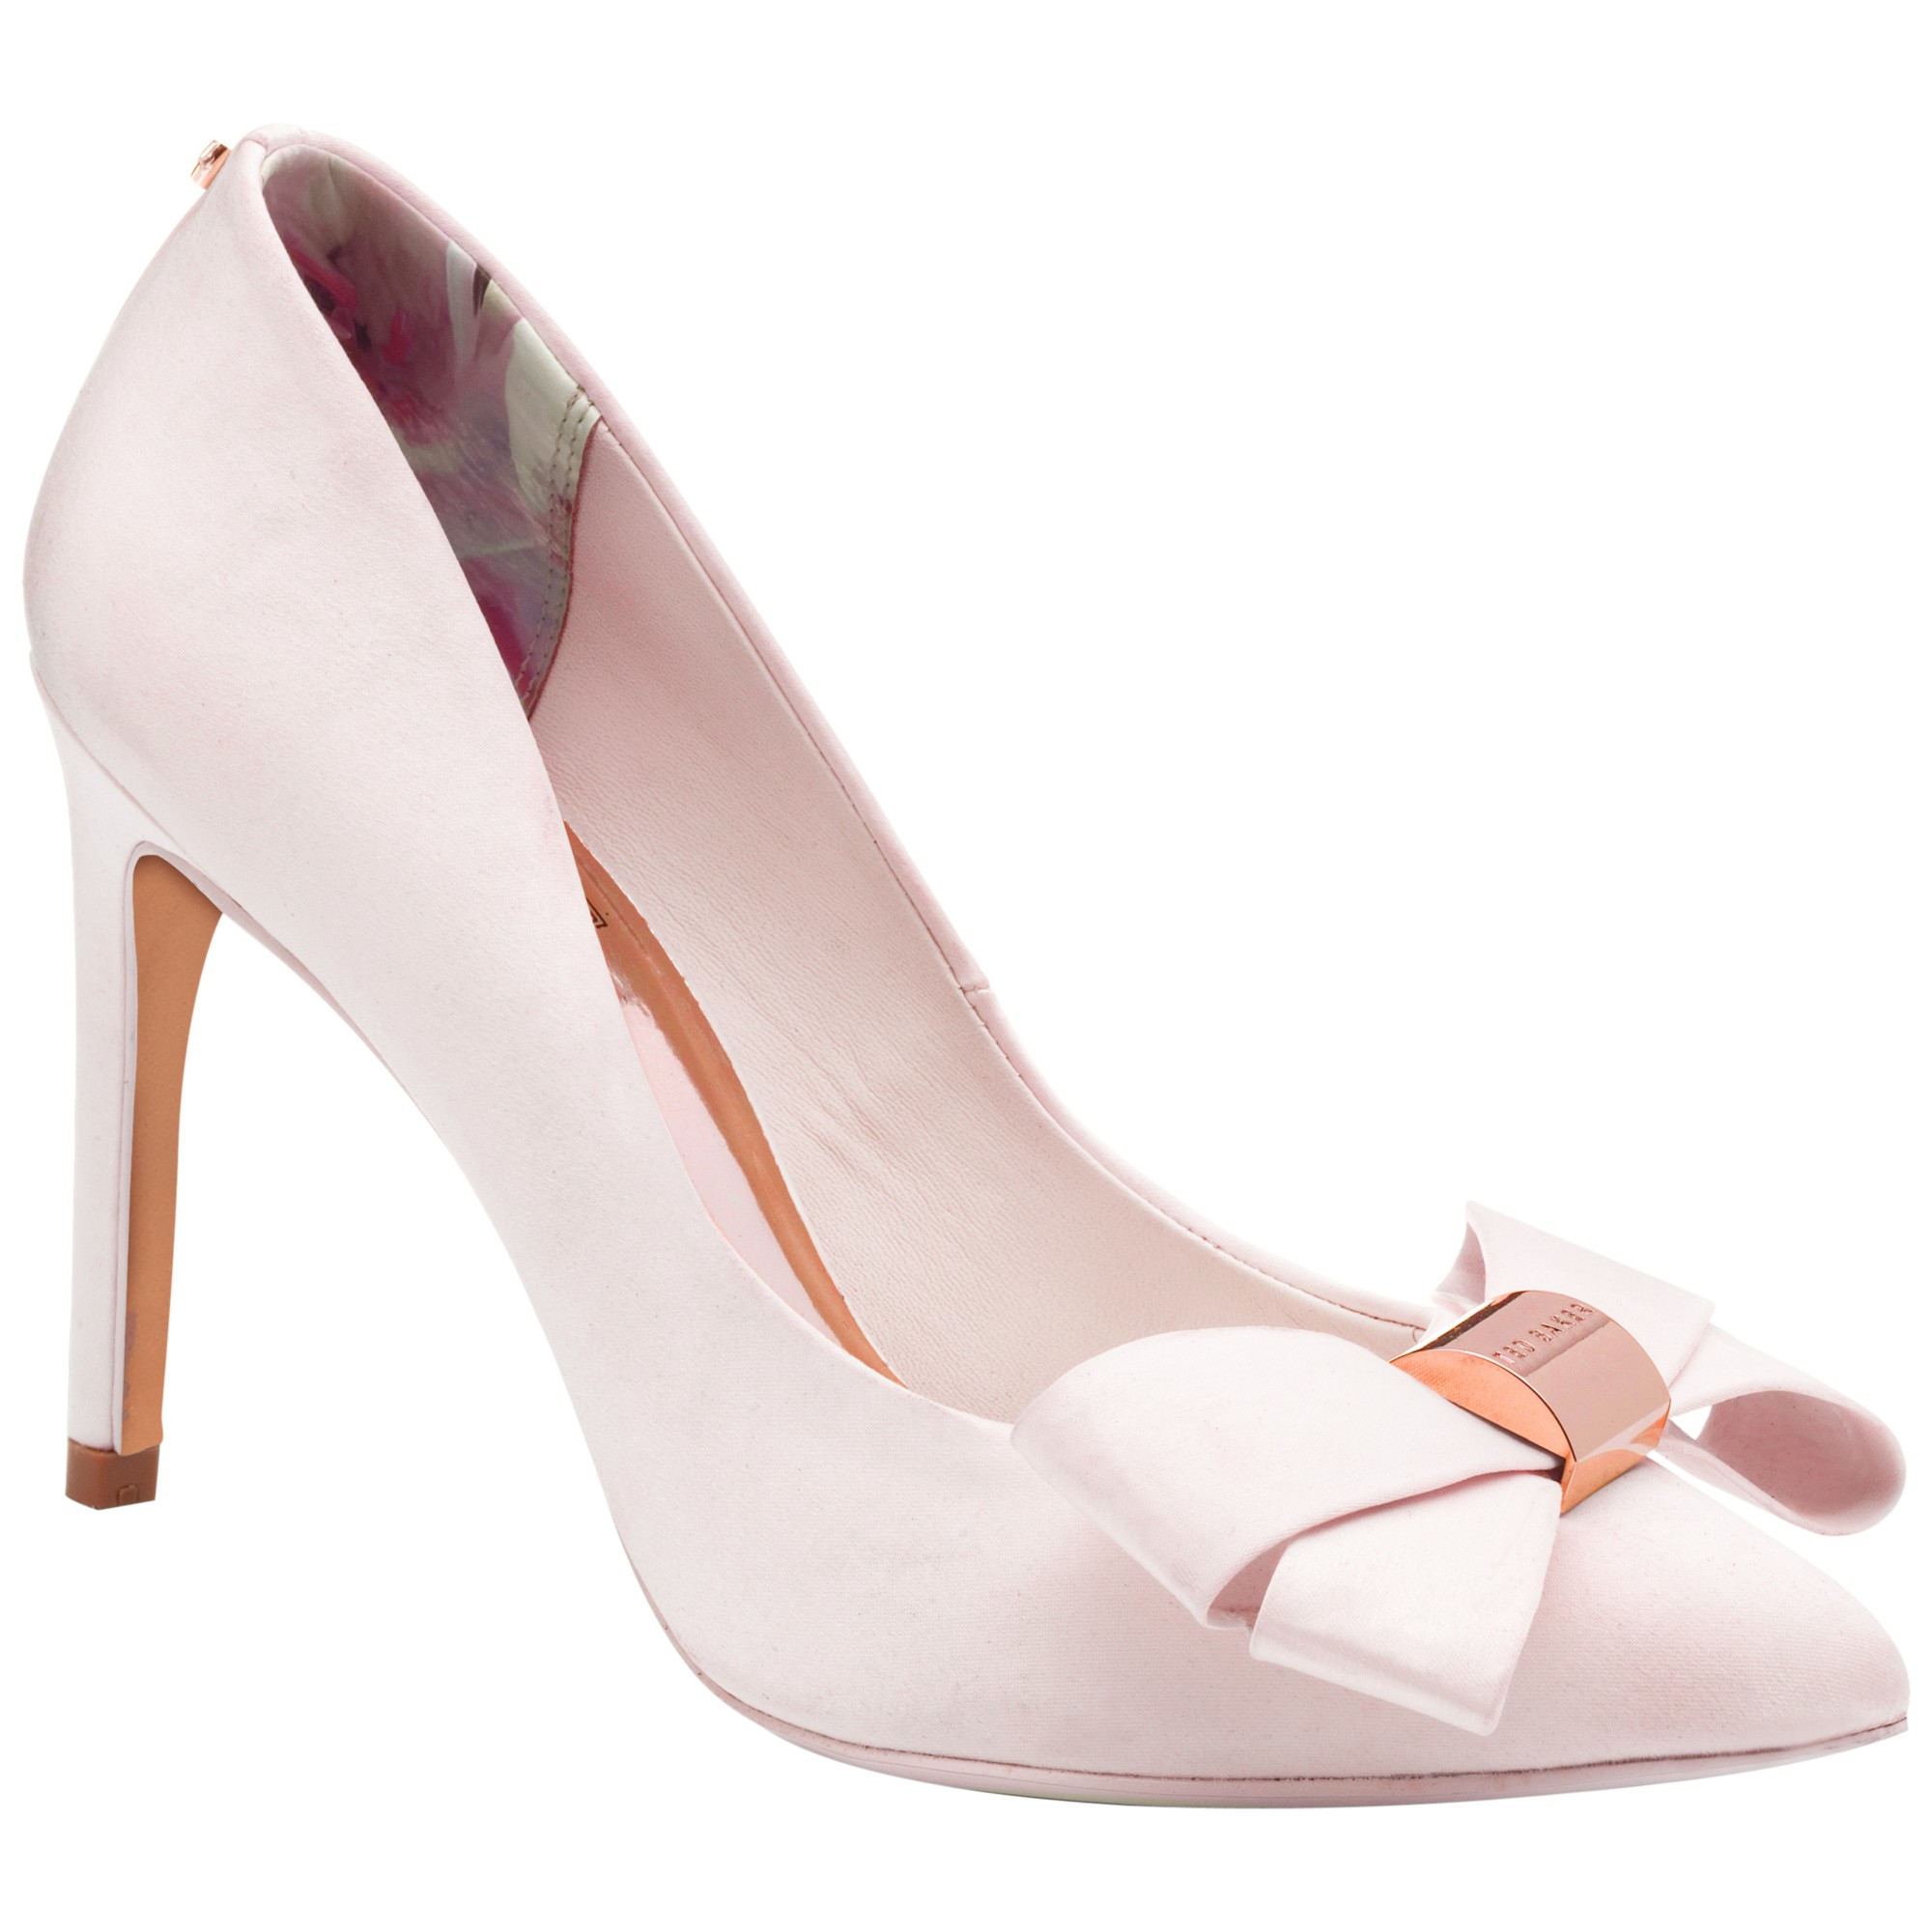 c11eefdd679e Ted Baker Ichlibi Pointed Toe Stiletto Court Shoes in Pink - Lyst